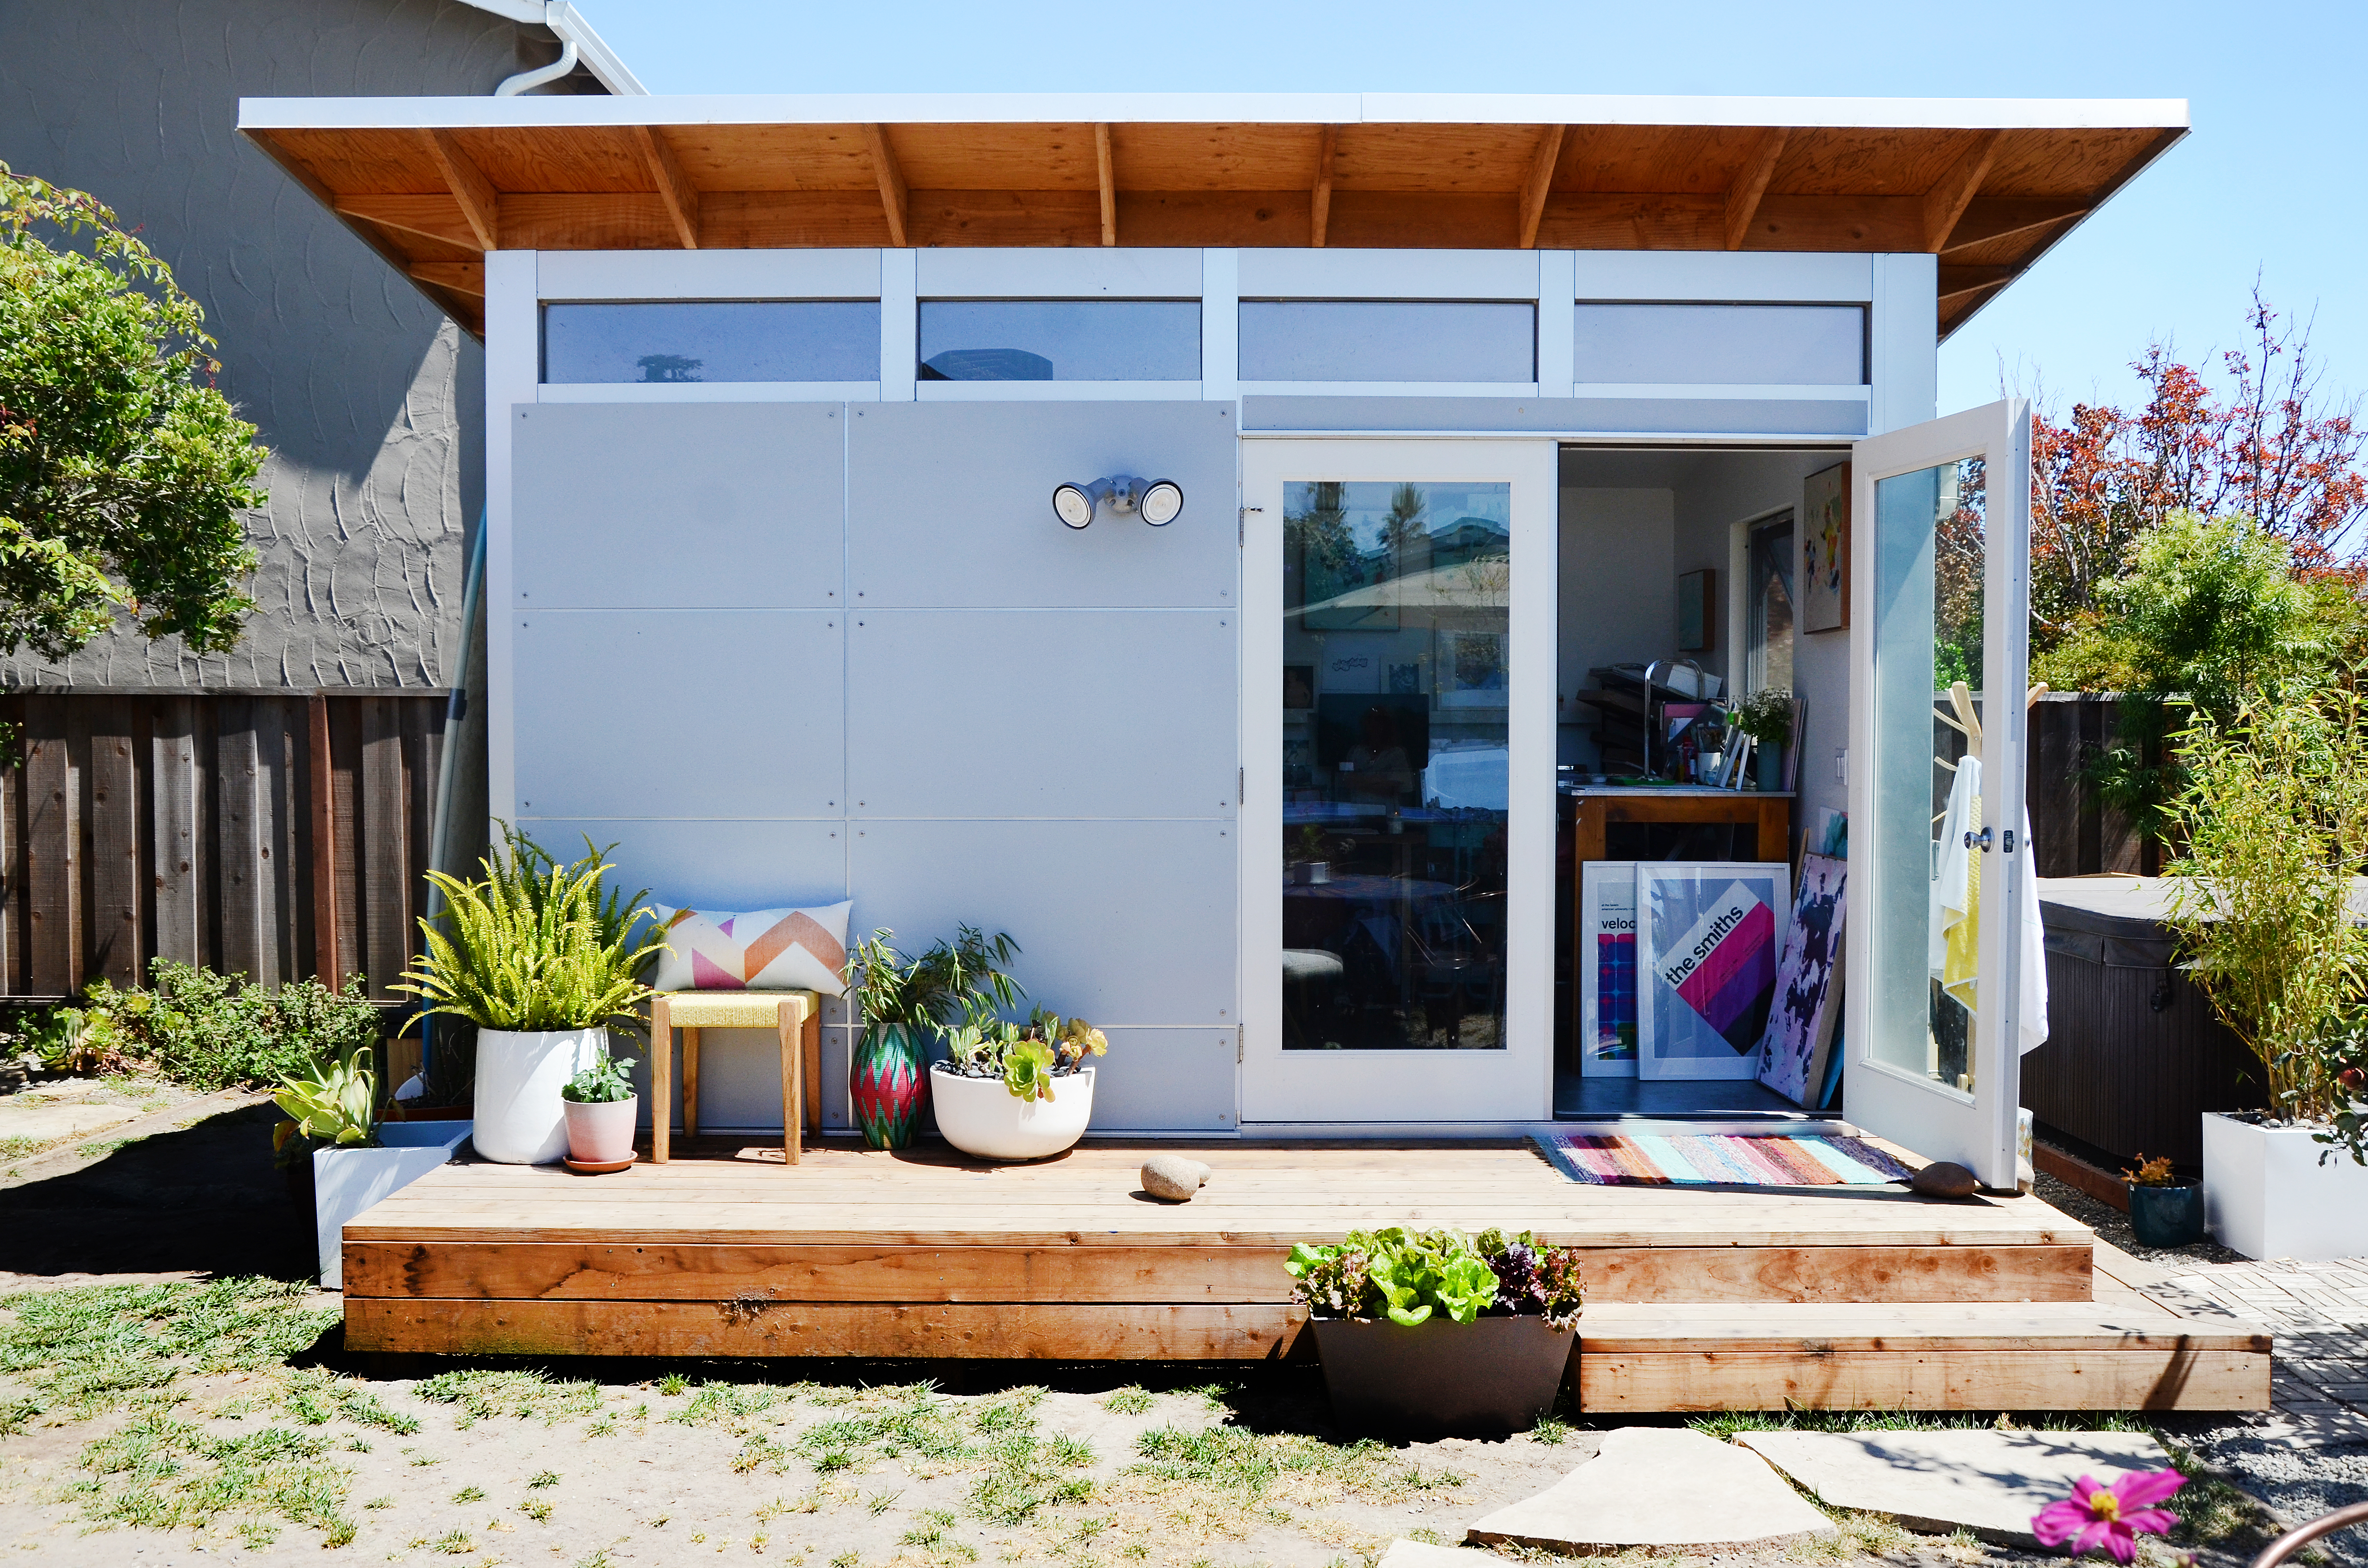 The 8 Tips To Know About Being an Airbnb Host | Apartment Therapy